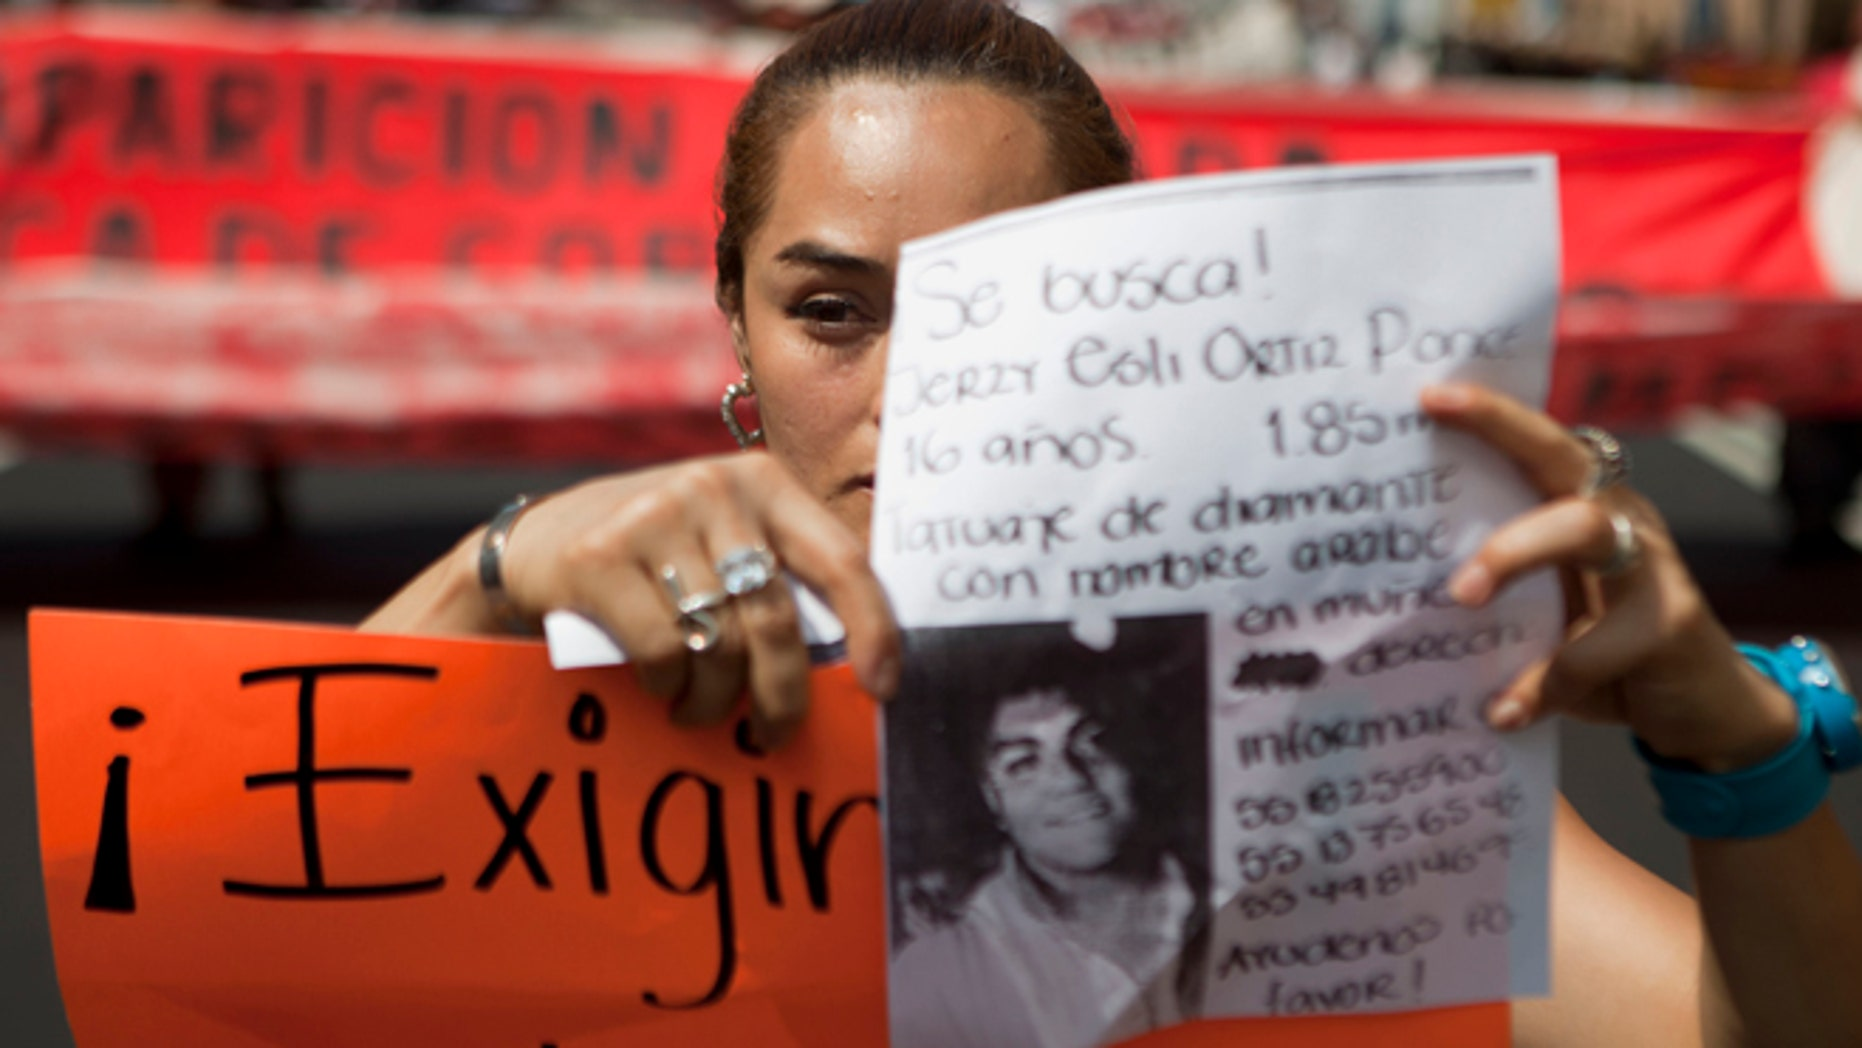 May 30: A woman holds up a sign with details of her recently disappeared relative during a protest in Mexico City.